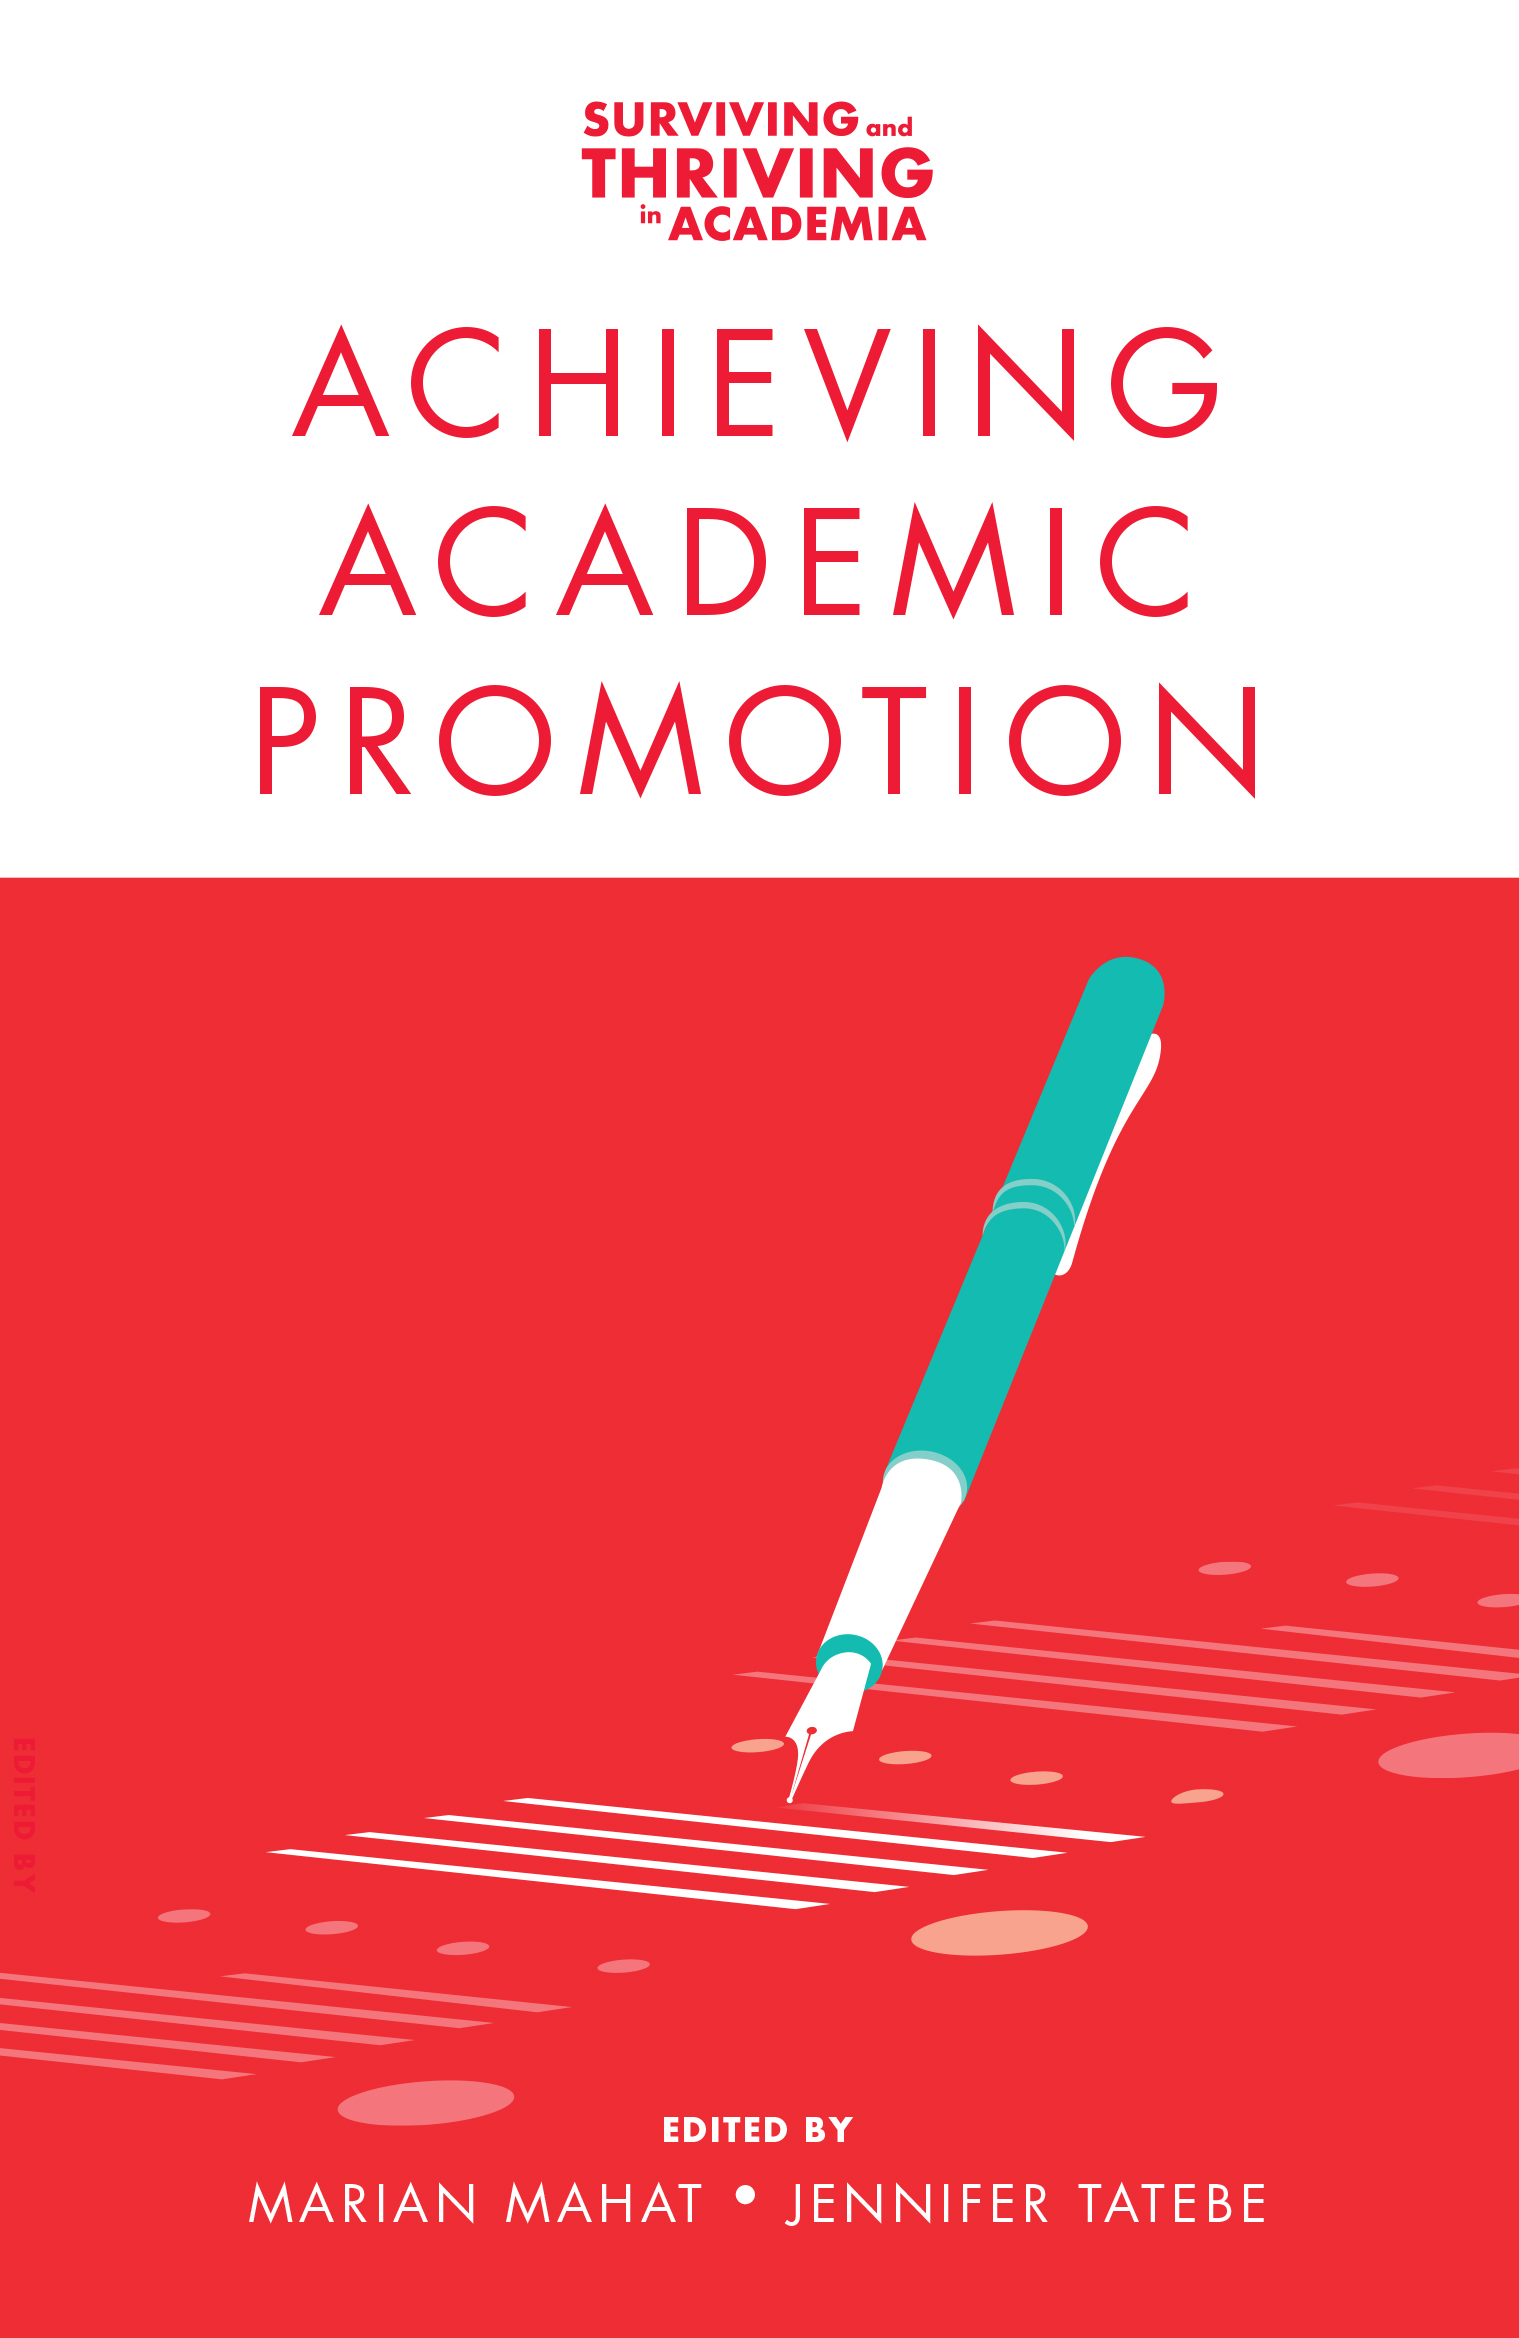 Book cover for Achieving Academic Promotion a book by Jennifer Tatebe, Marian Mahat